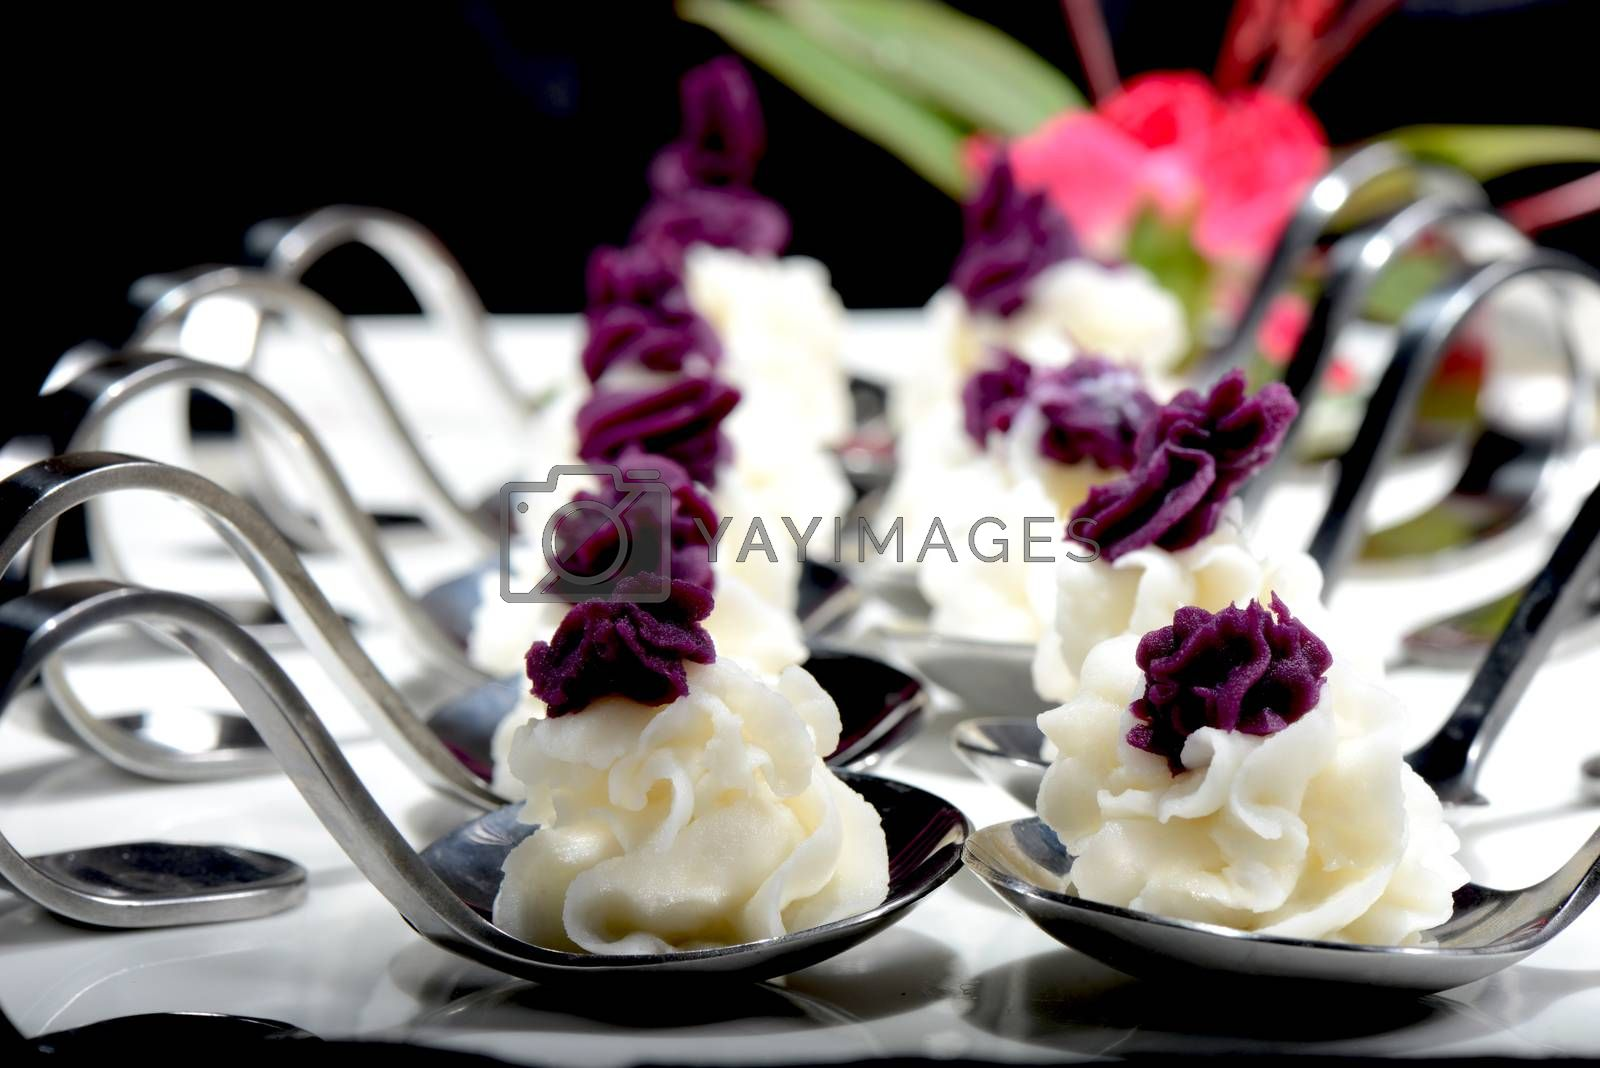 Chinese Food: Dessert made of Purple sweet potato and yam by bbbar